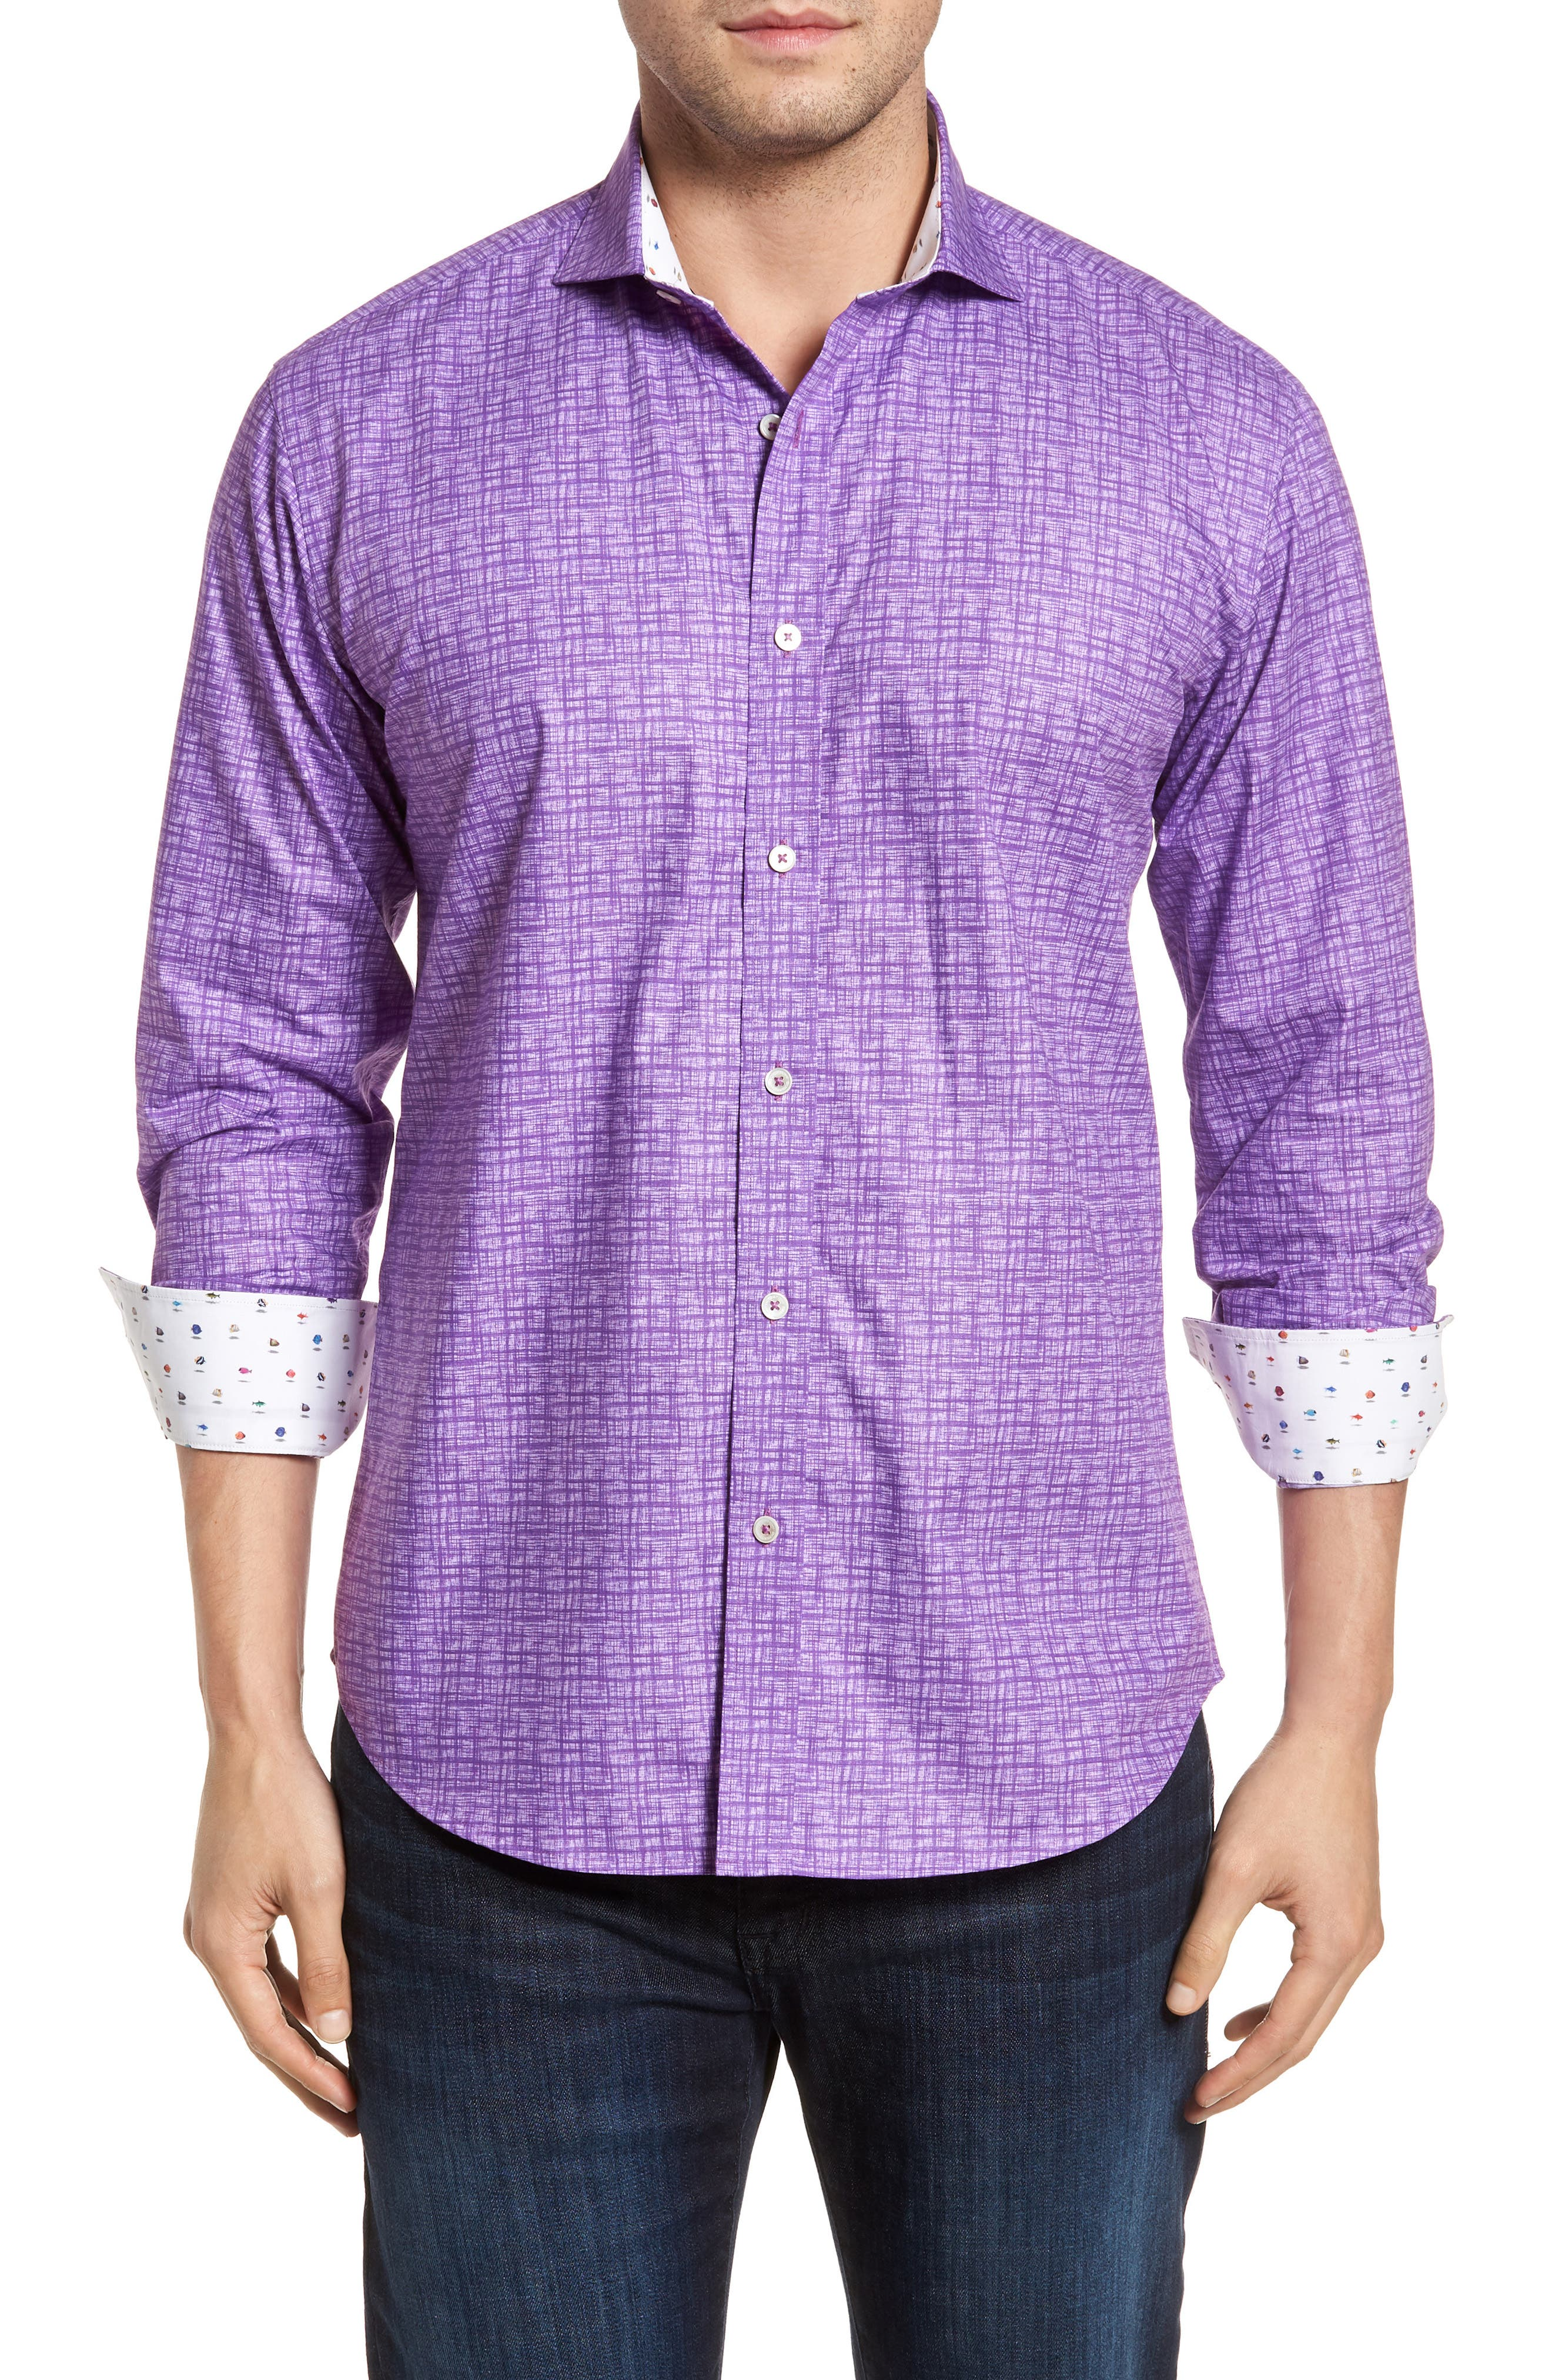 Freehand Shaped Fit Sport Shirt,                             Main thumbnail 1, color,                             Orchid